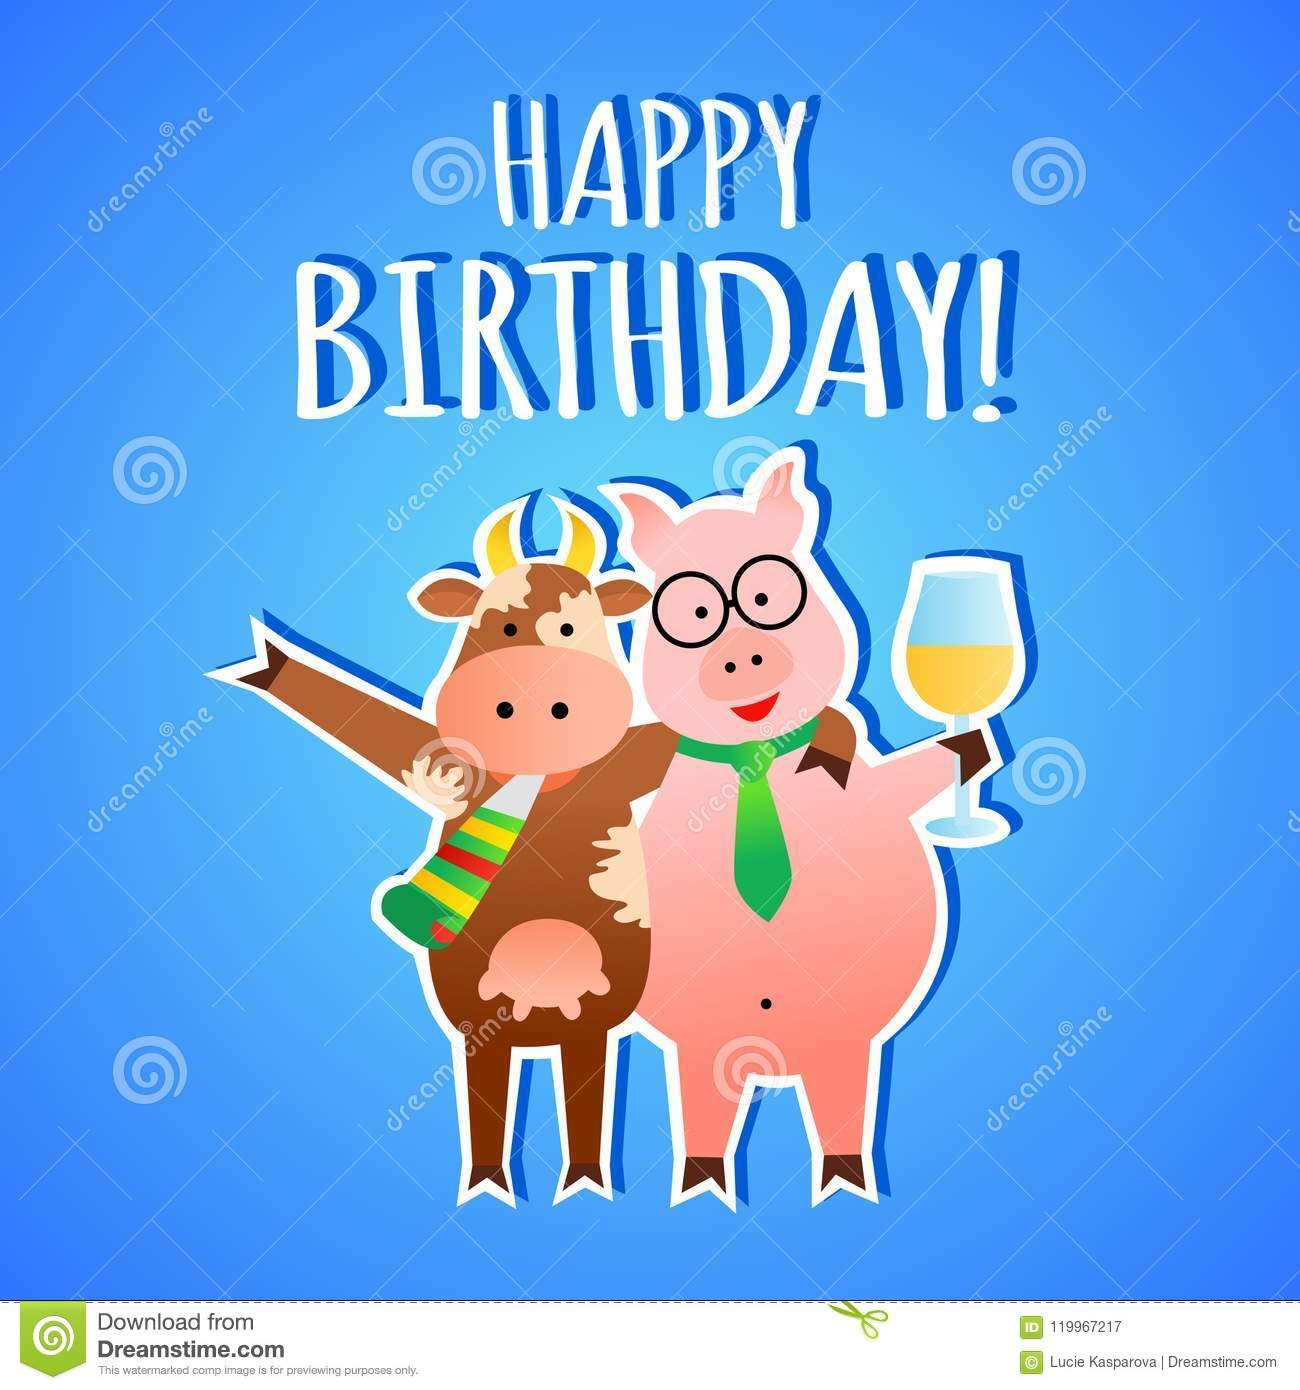 Funny Cartoon Happy Birthday Greeting Card With Pig And Cow Vector Illustration